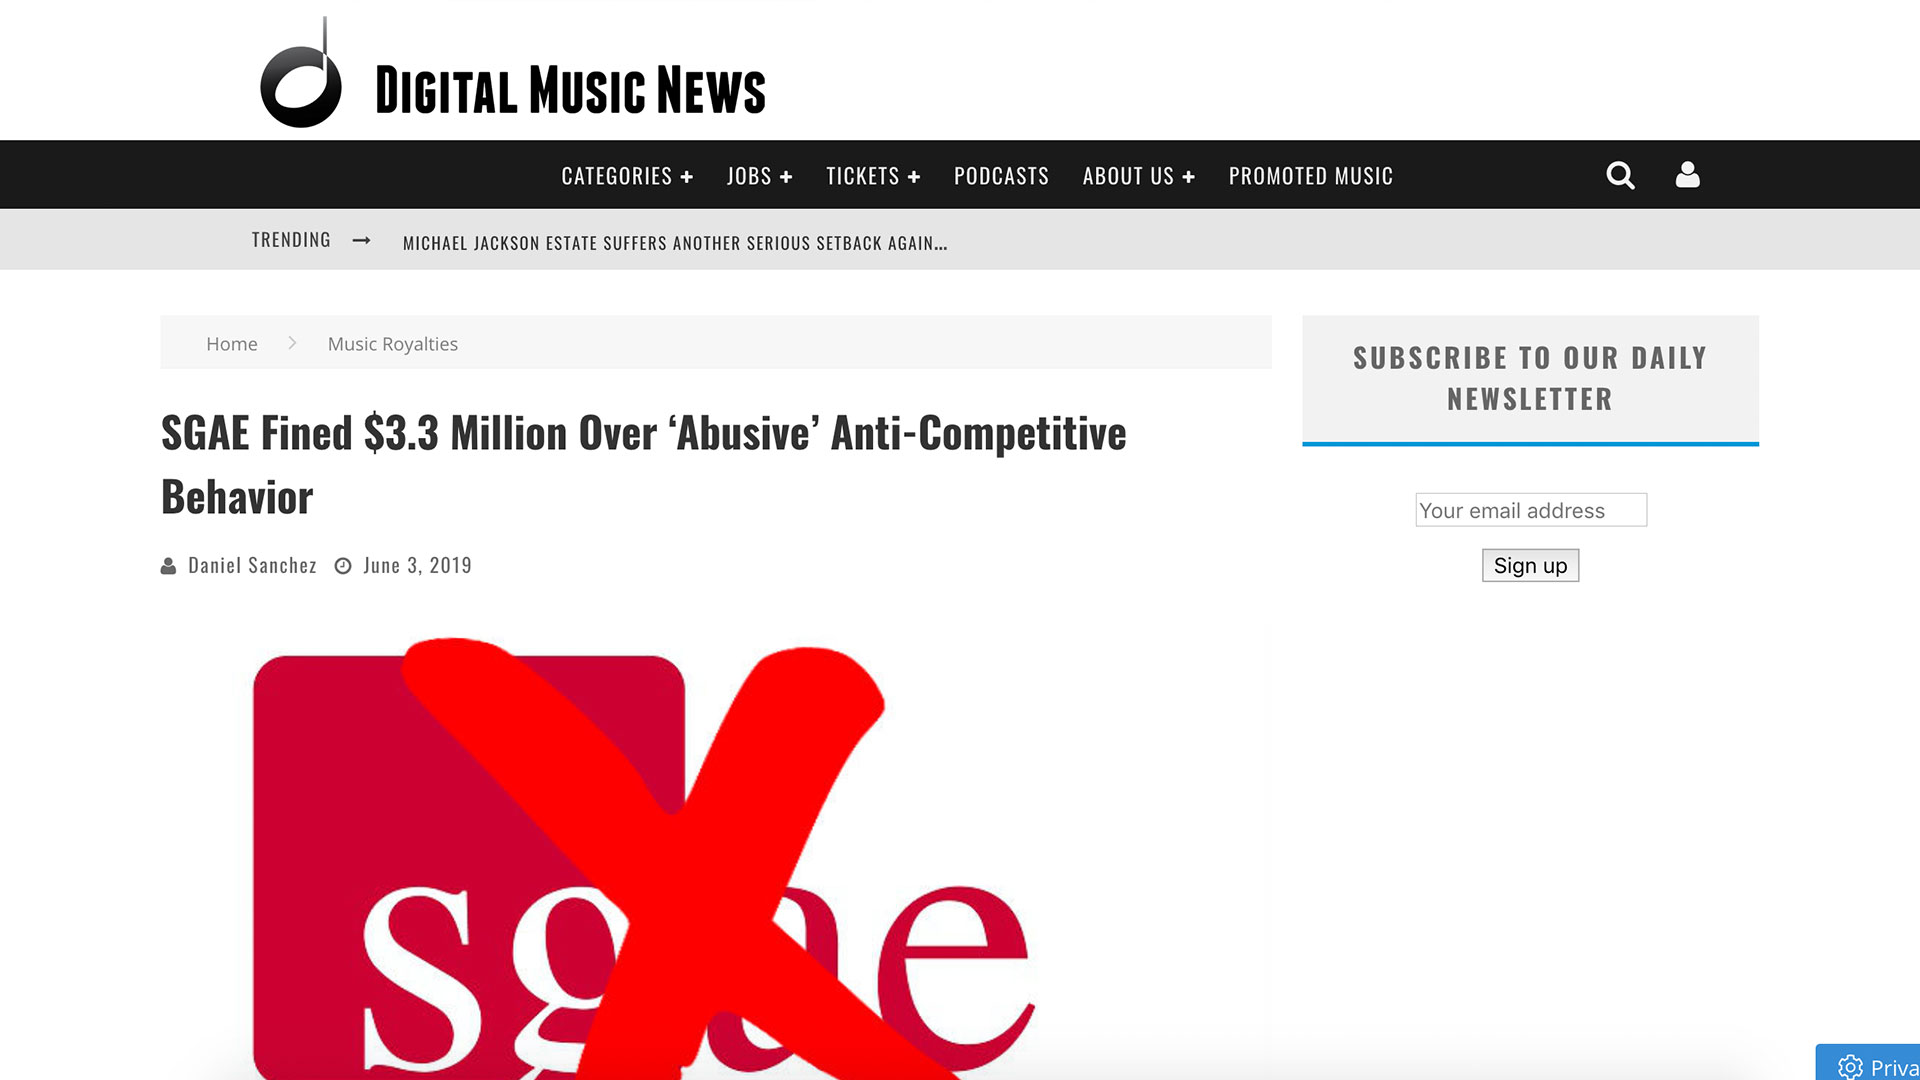 Fairness Rocks News SGAE Fined $3.3 Million Over 'Abusive' Anti-Competitive Behavior